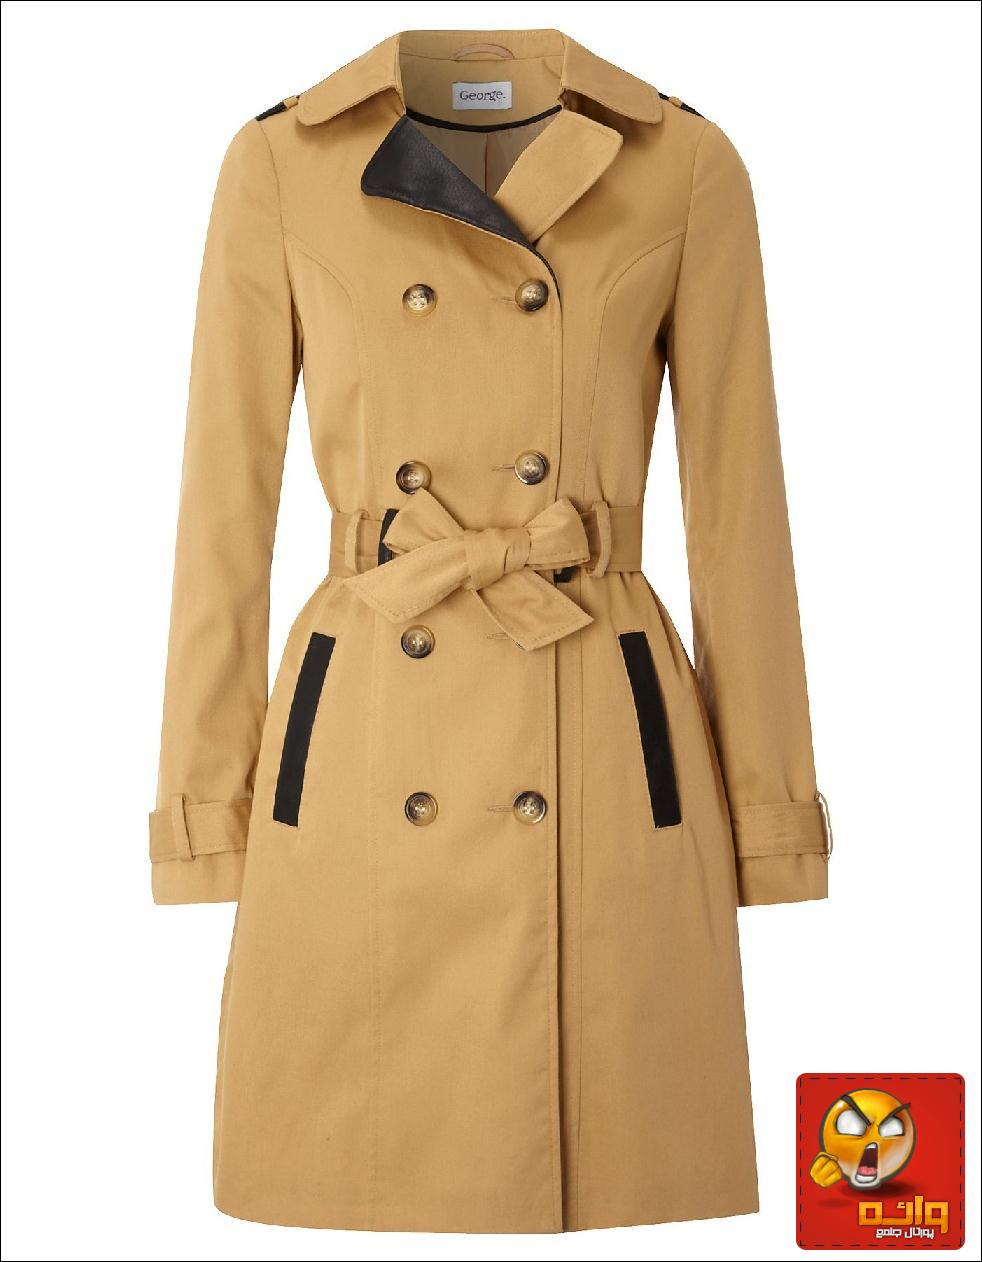 http://rozup.ir/up/wae/Pictures/Coat/WinterCoat1/Winter-Coats-For-Women.jpg